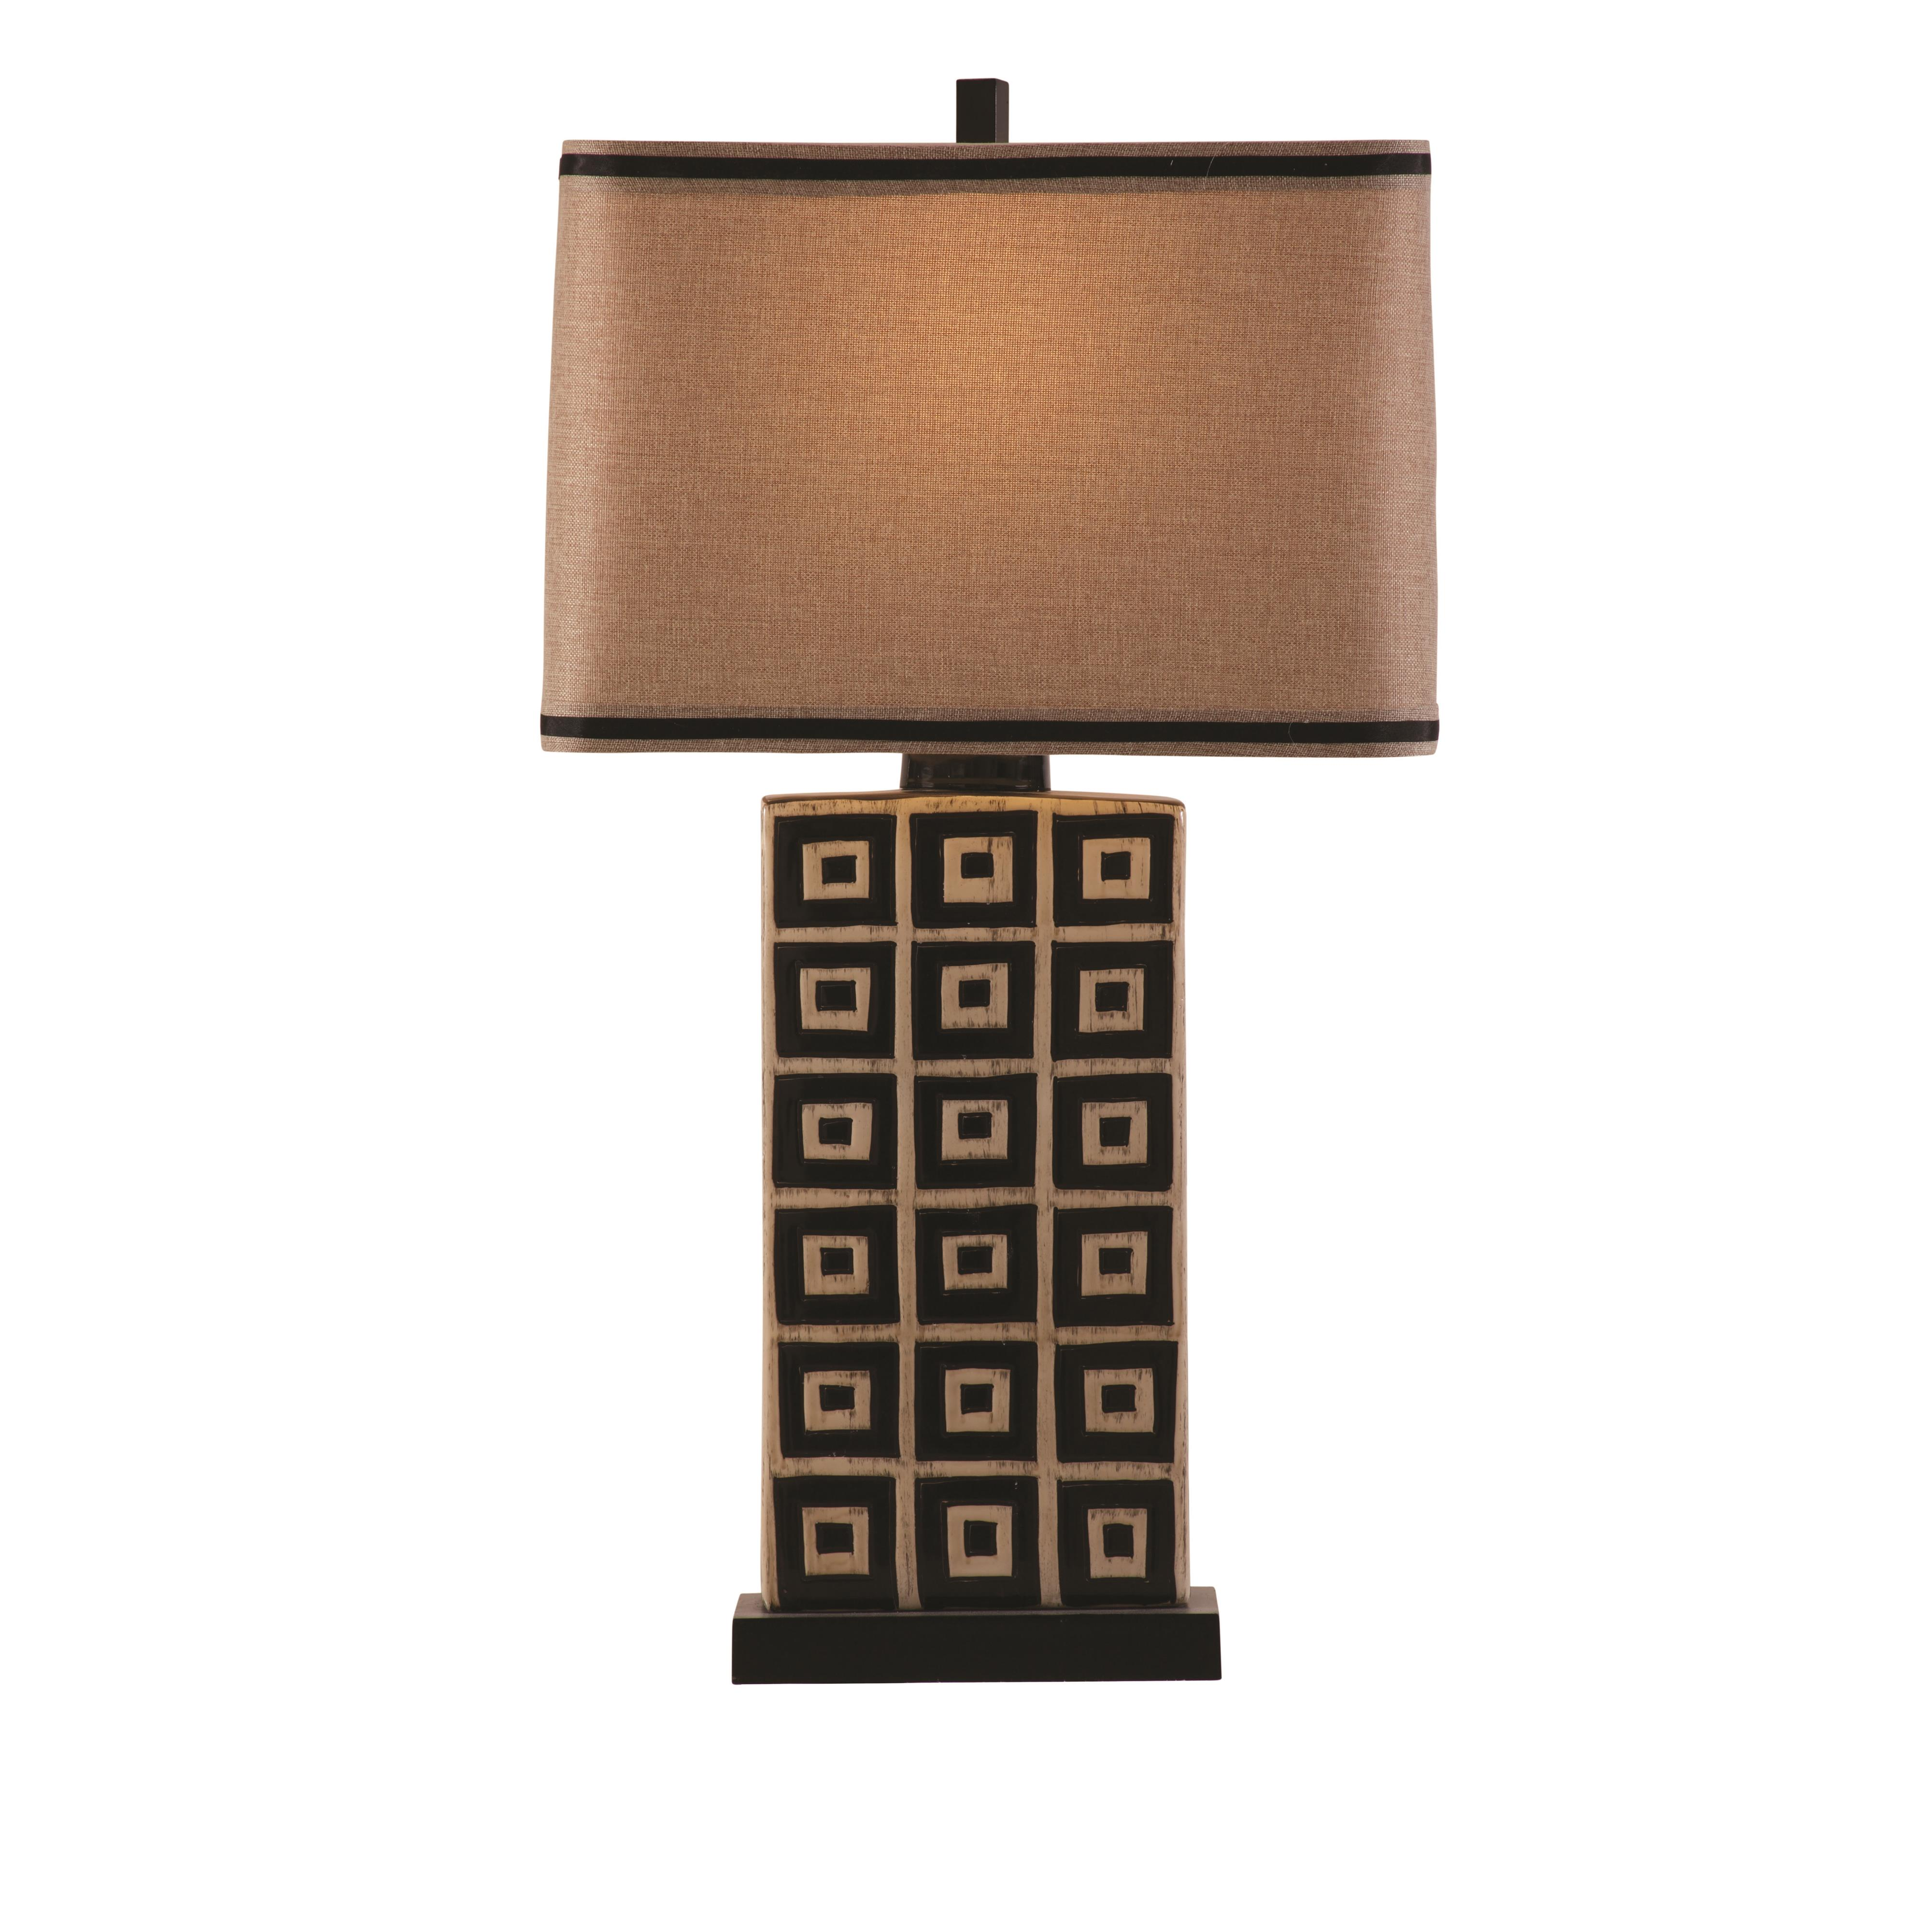 Thoroughly Modern Lakota Table Lamp by Bassett Mirror at Alison Craig Home Furnishings